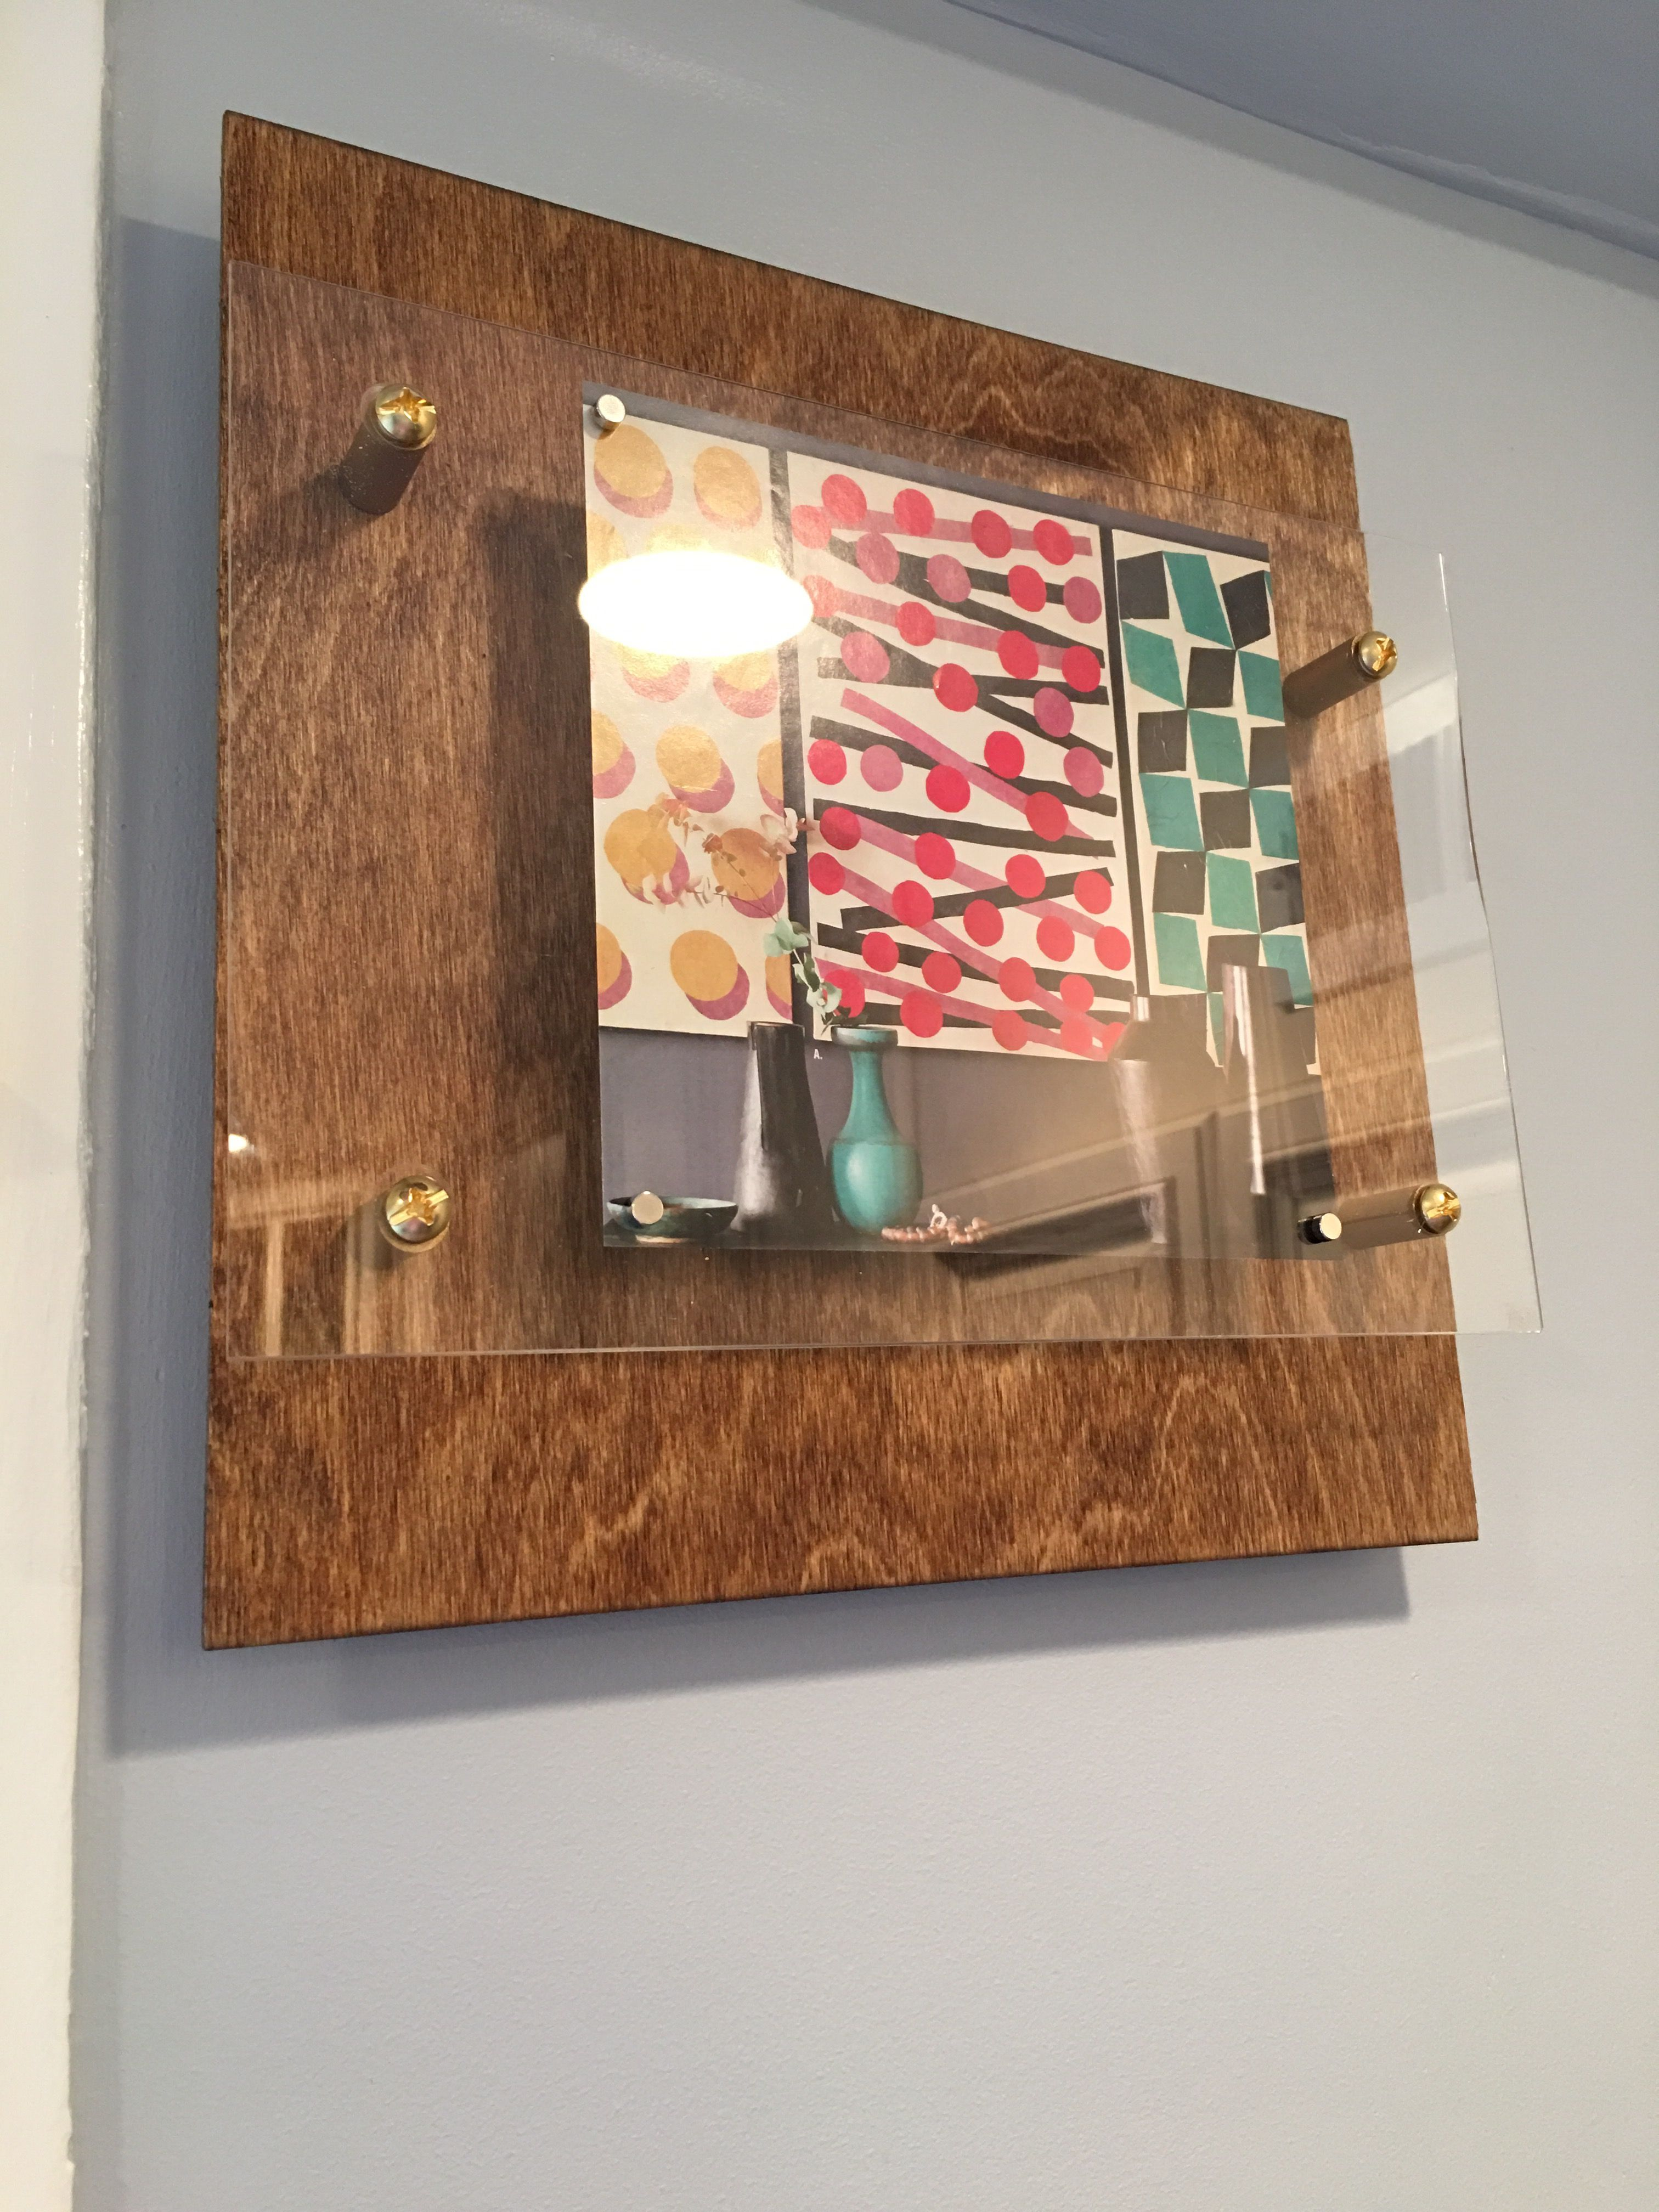 Diy Picture Frame With Glass Wood Floating Display Frames In The Kitchen Diy Frame